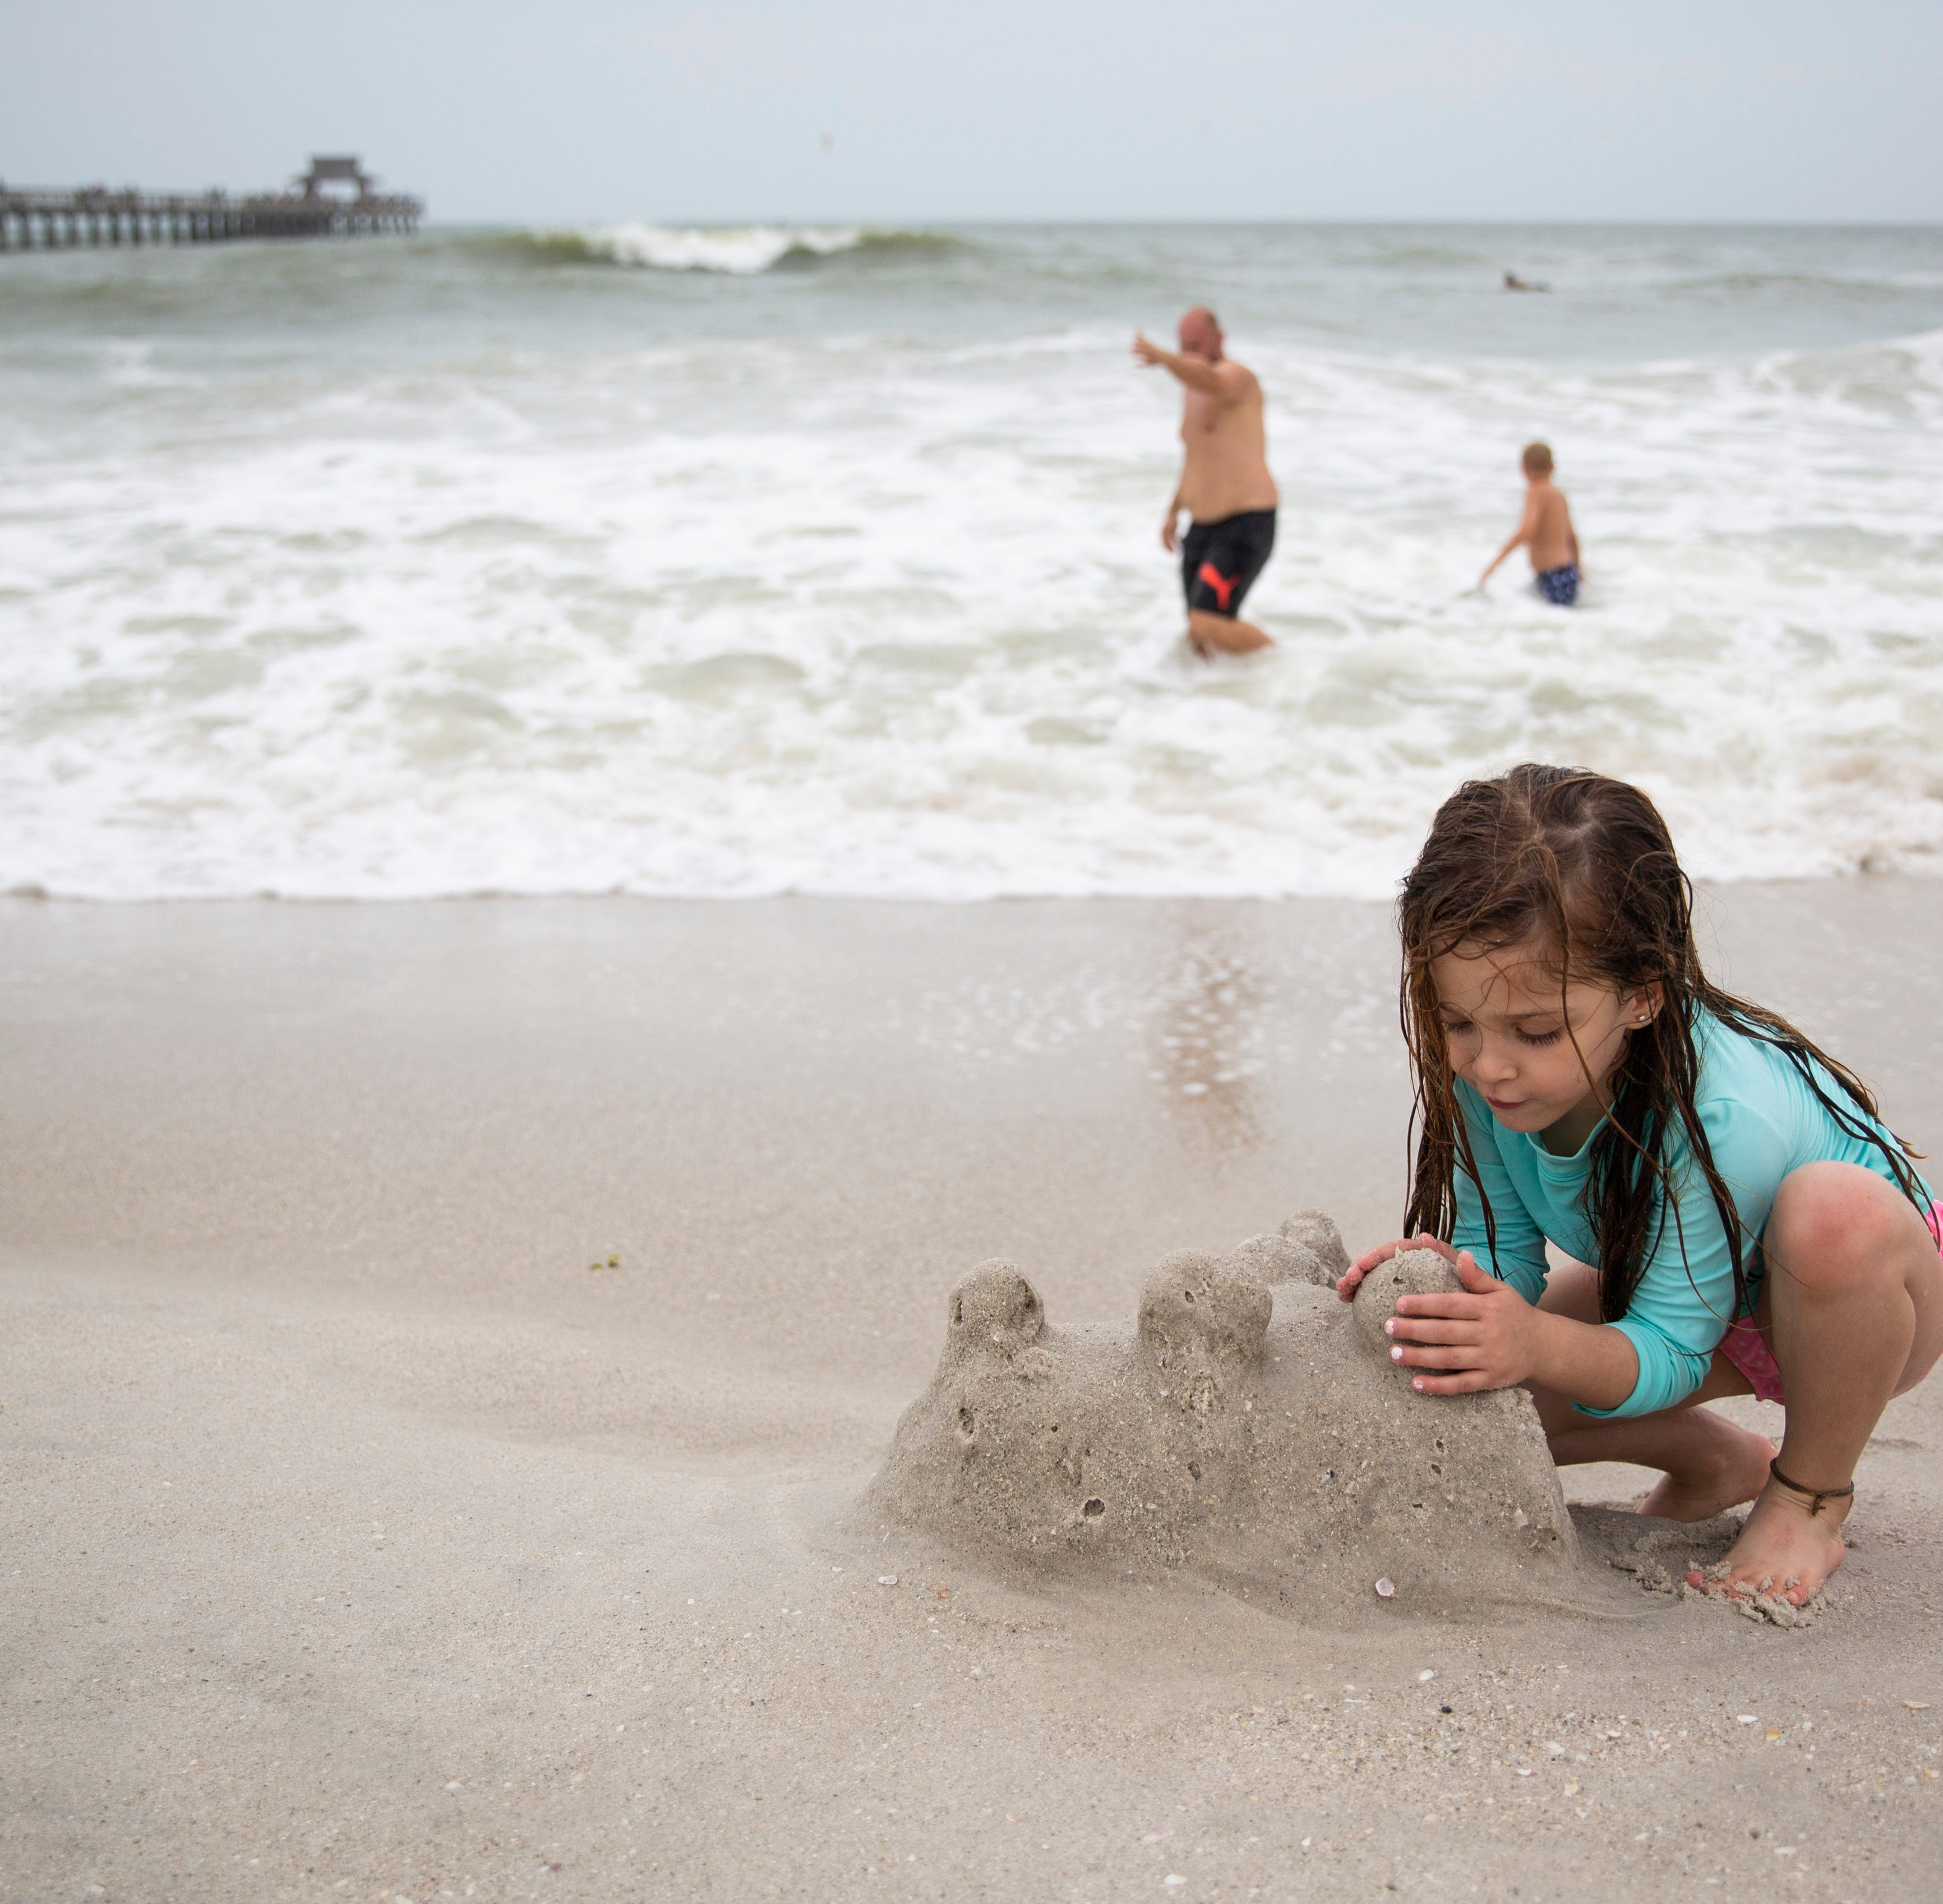 Despite challenges, tourism in Collier County remained strong in 2018